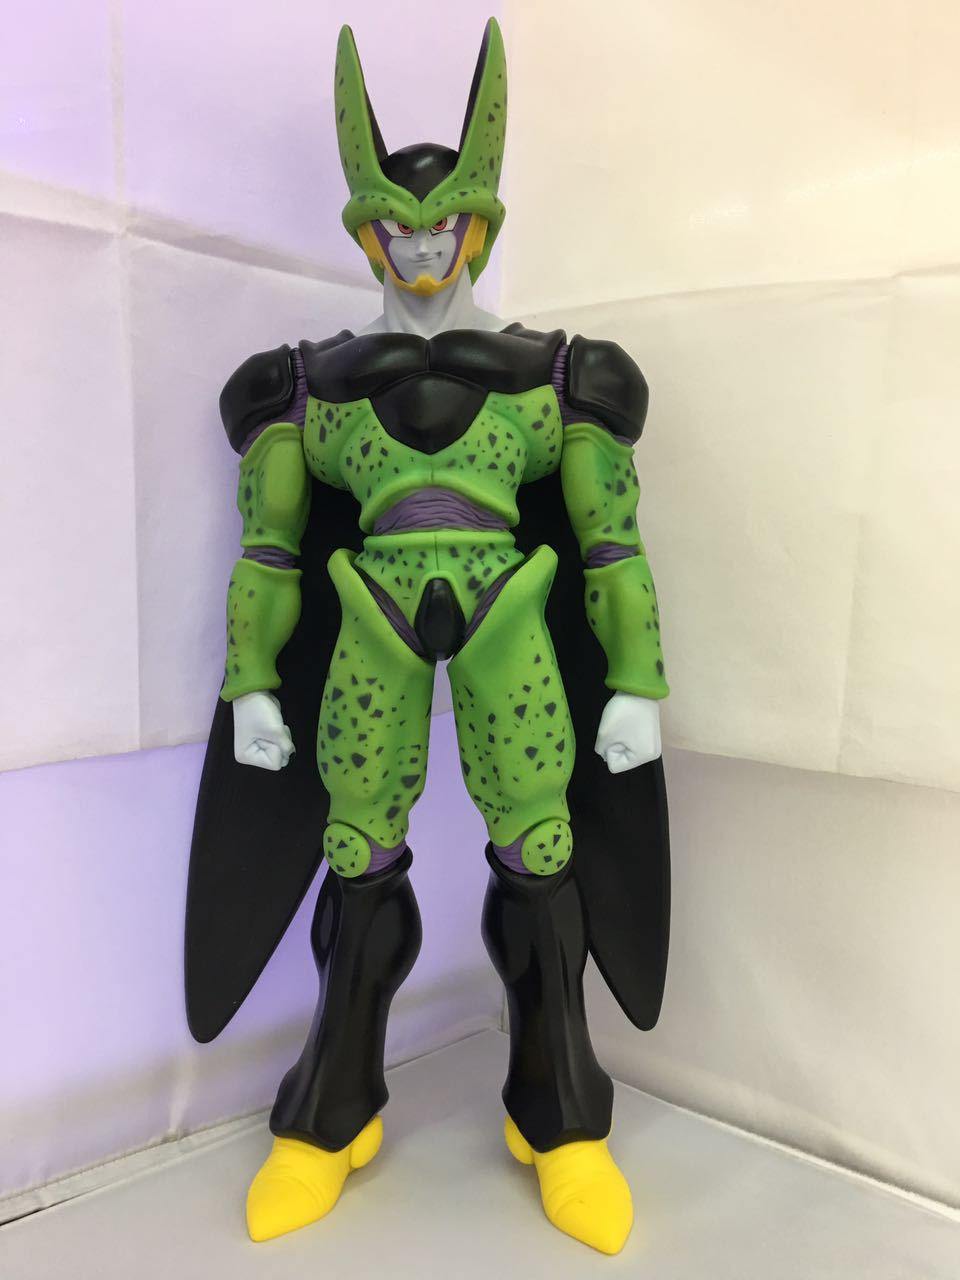 Anime Dragon Ball Z Perfect Cell Super Big PVC Action Figure Collectible Model Toy 48cm KT3906 double daisy